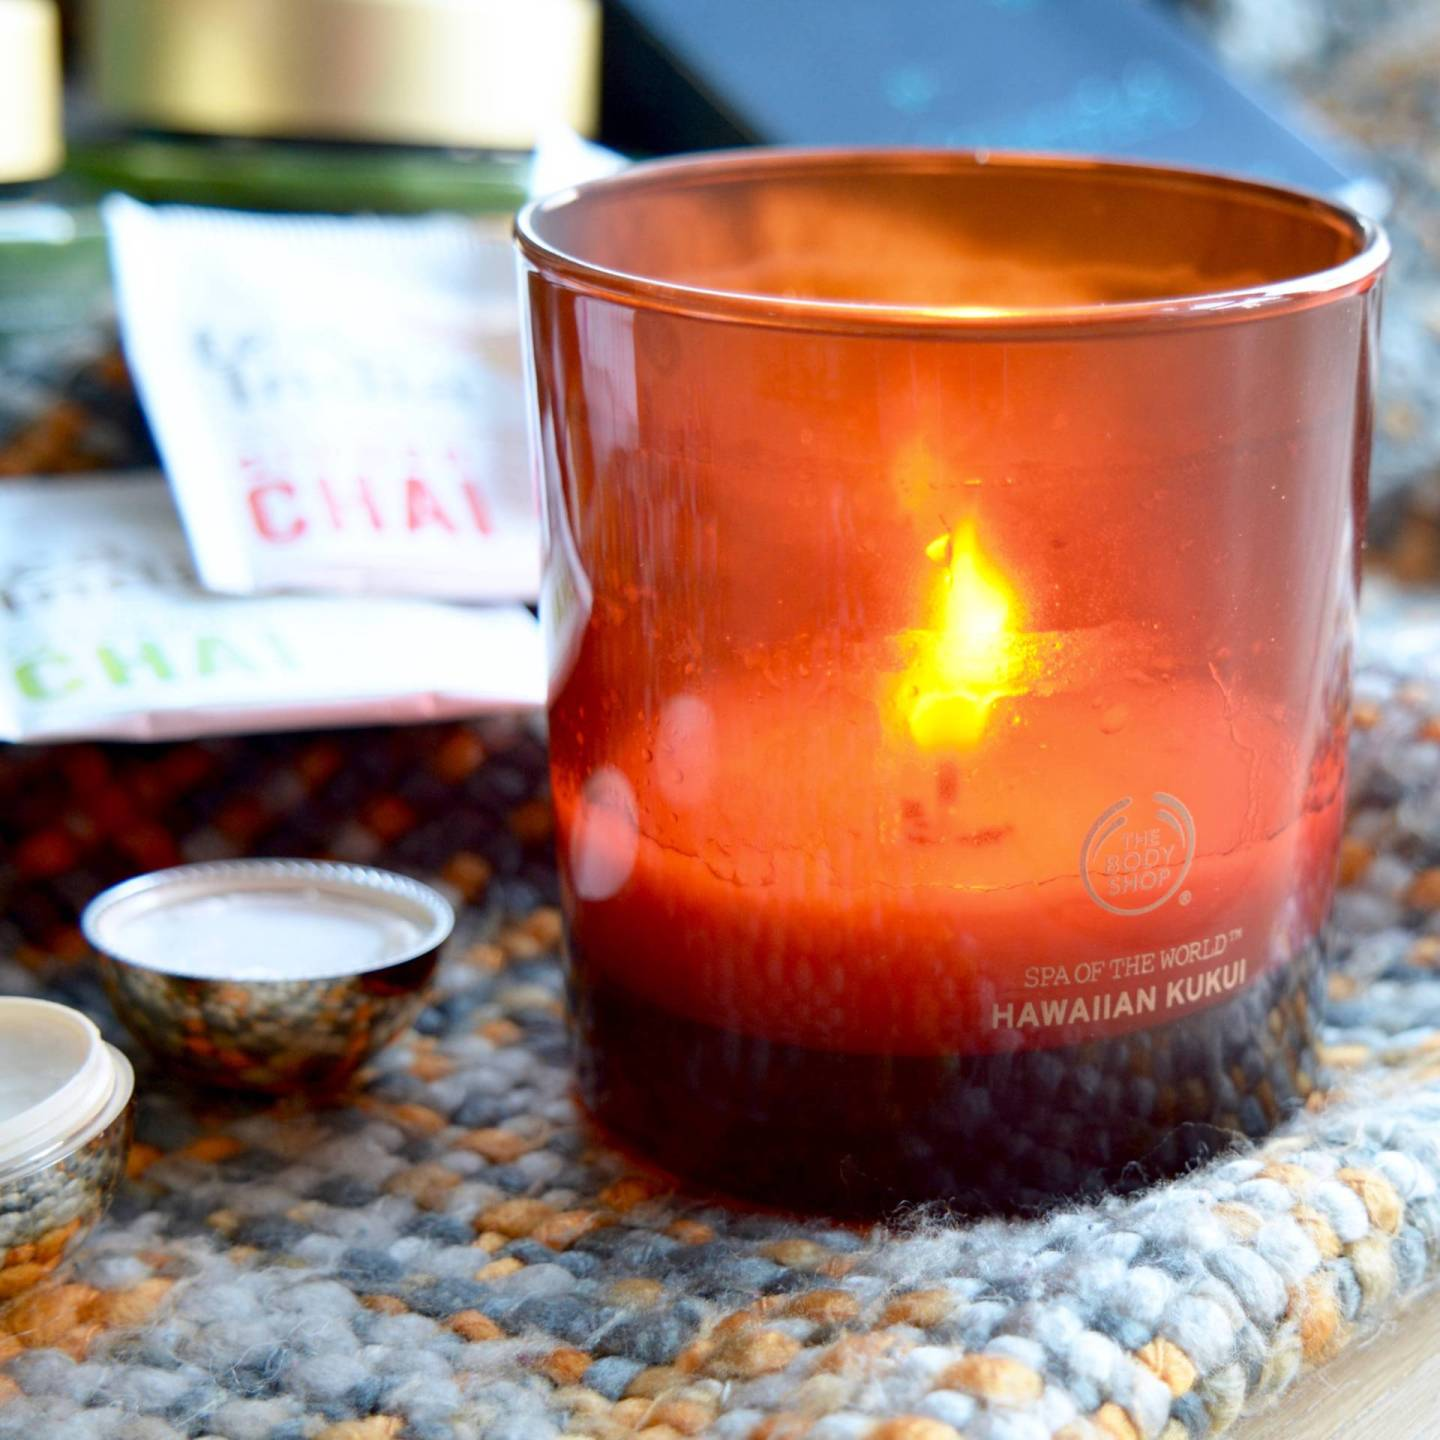 Winter Pamper - this Hawaiian Kukui candle from The Body Shop smells divine!